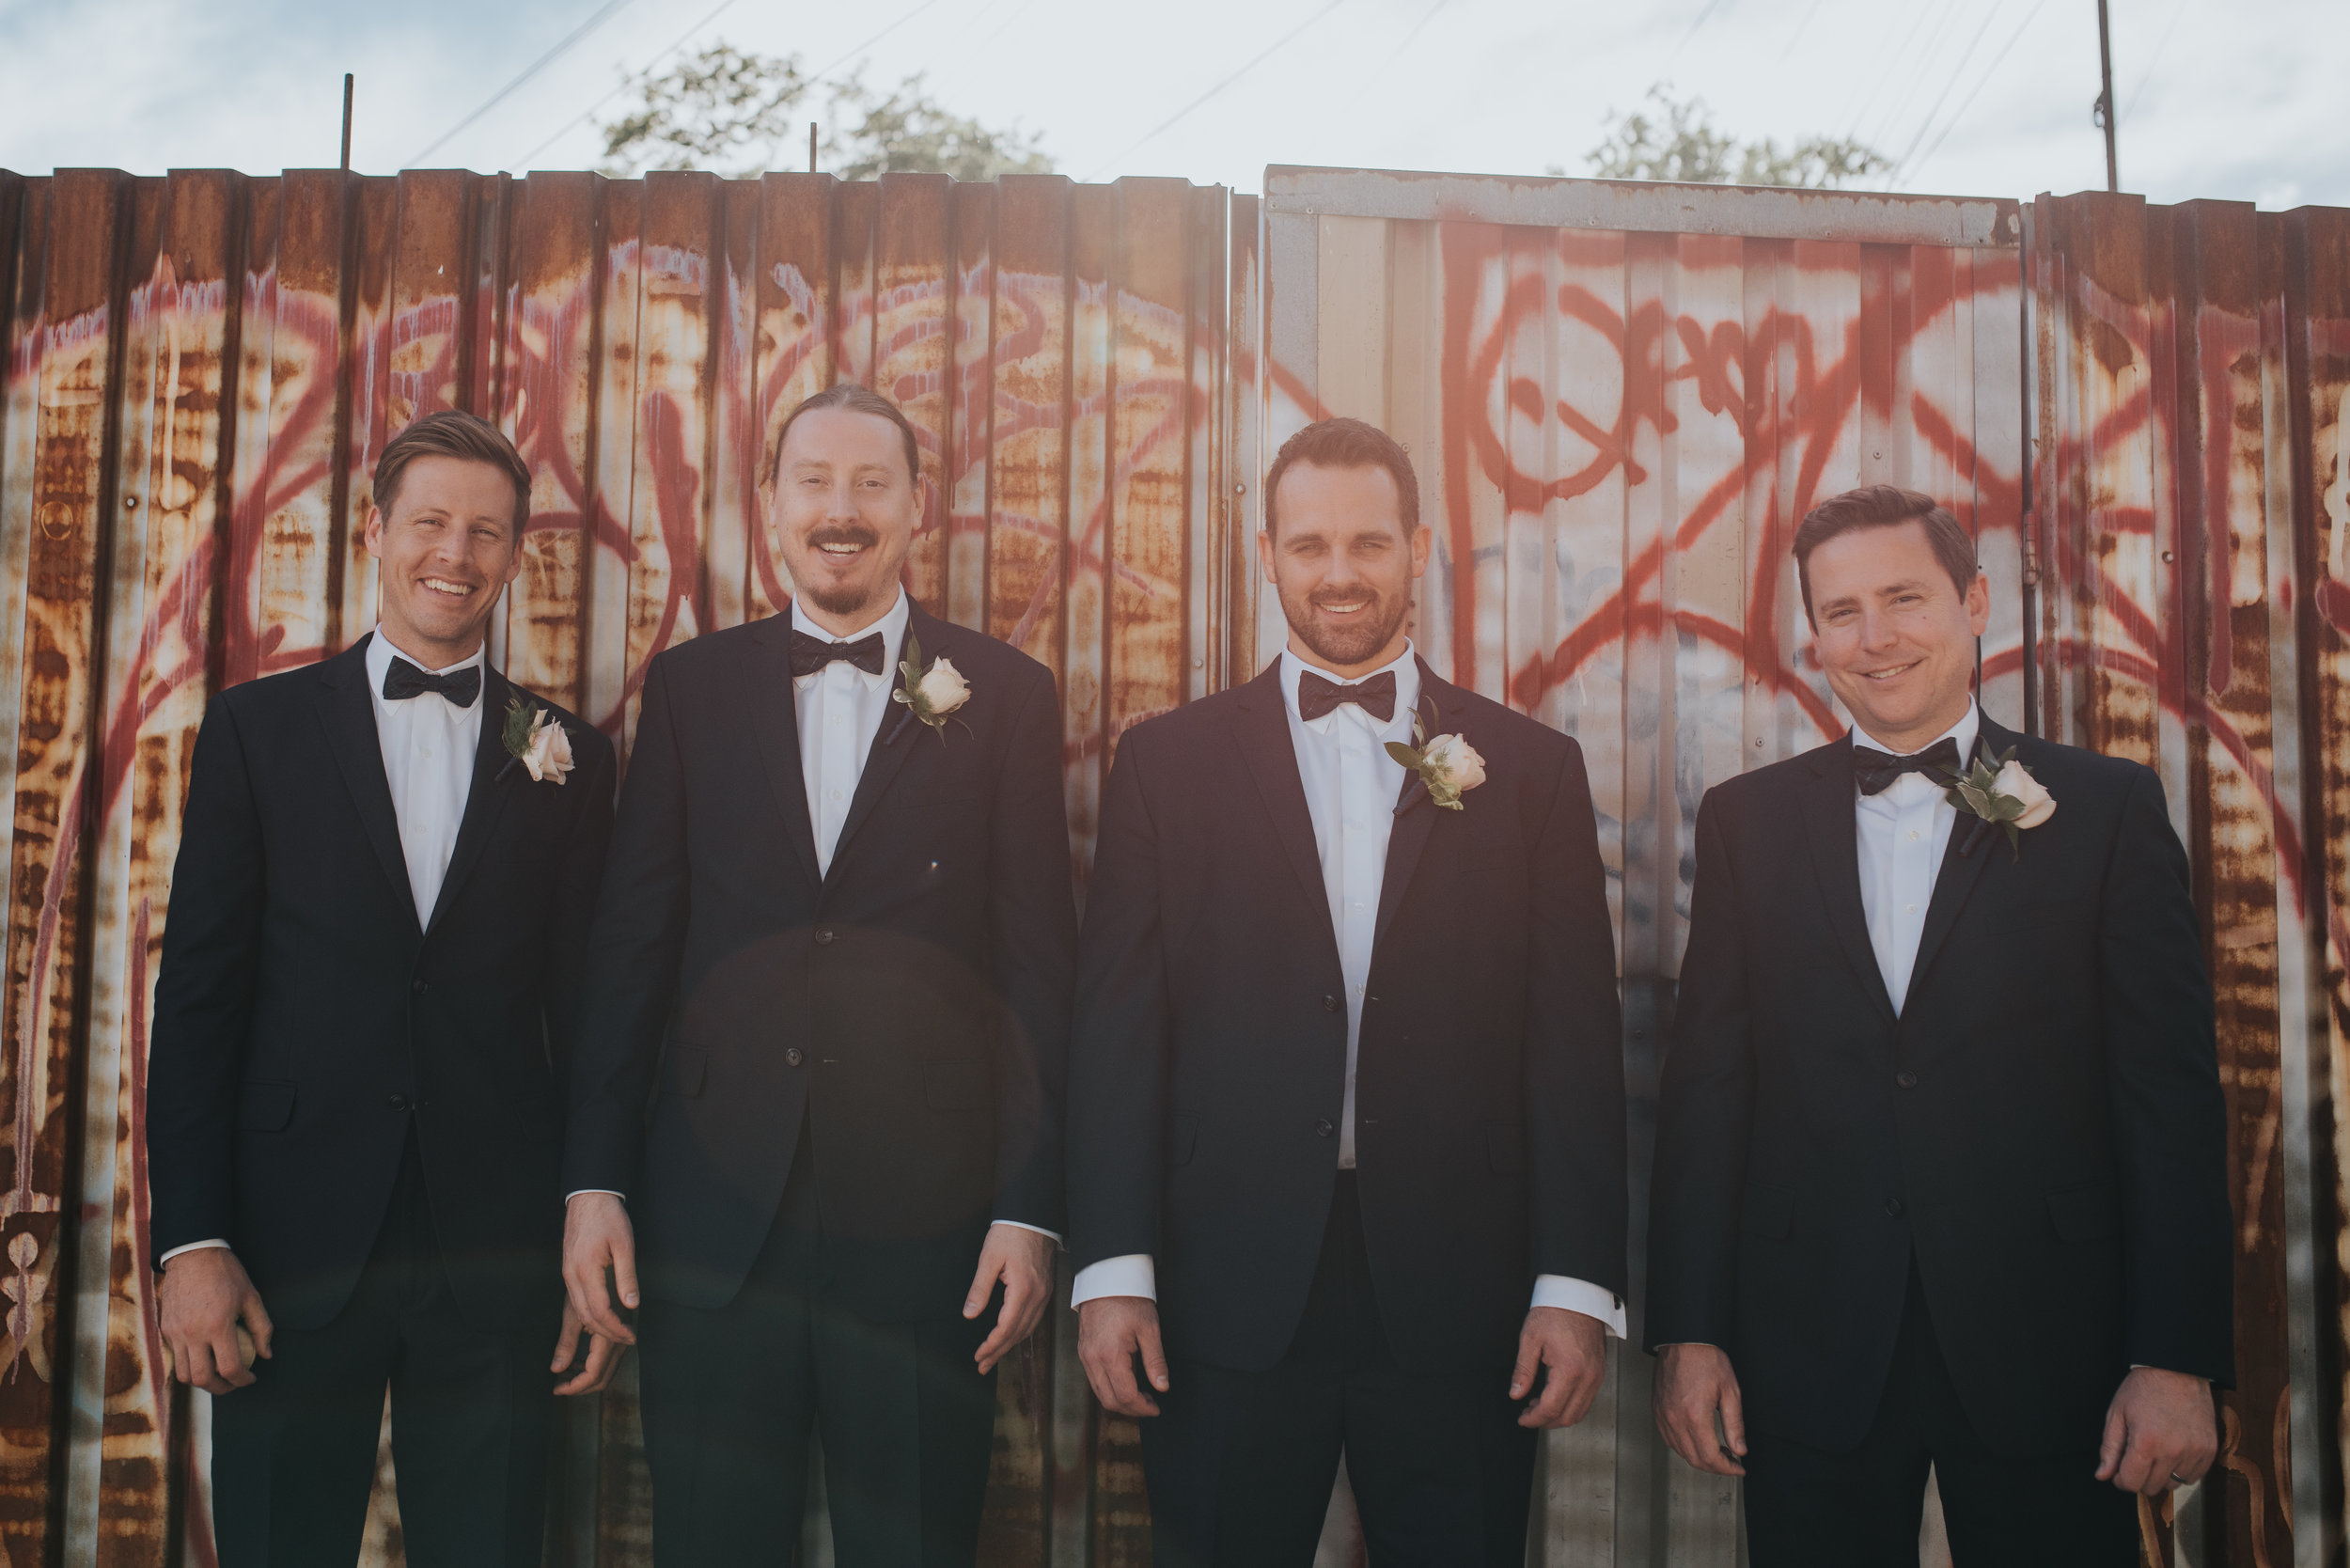 men-in-wedding-party-toronto-same-sex-wedding-willow-and-birch-photography-documentary-wedding-photographers.jpg